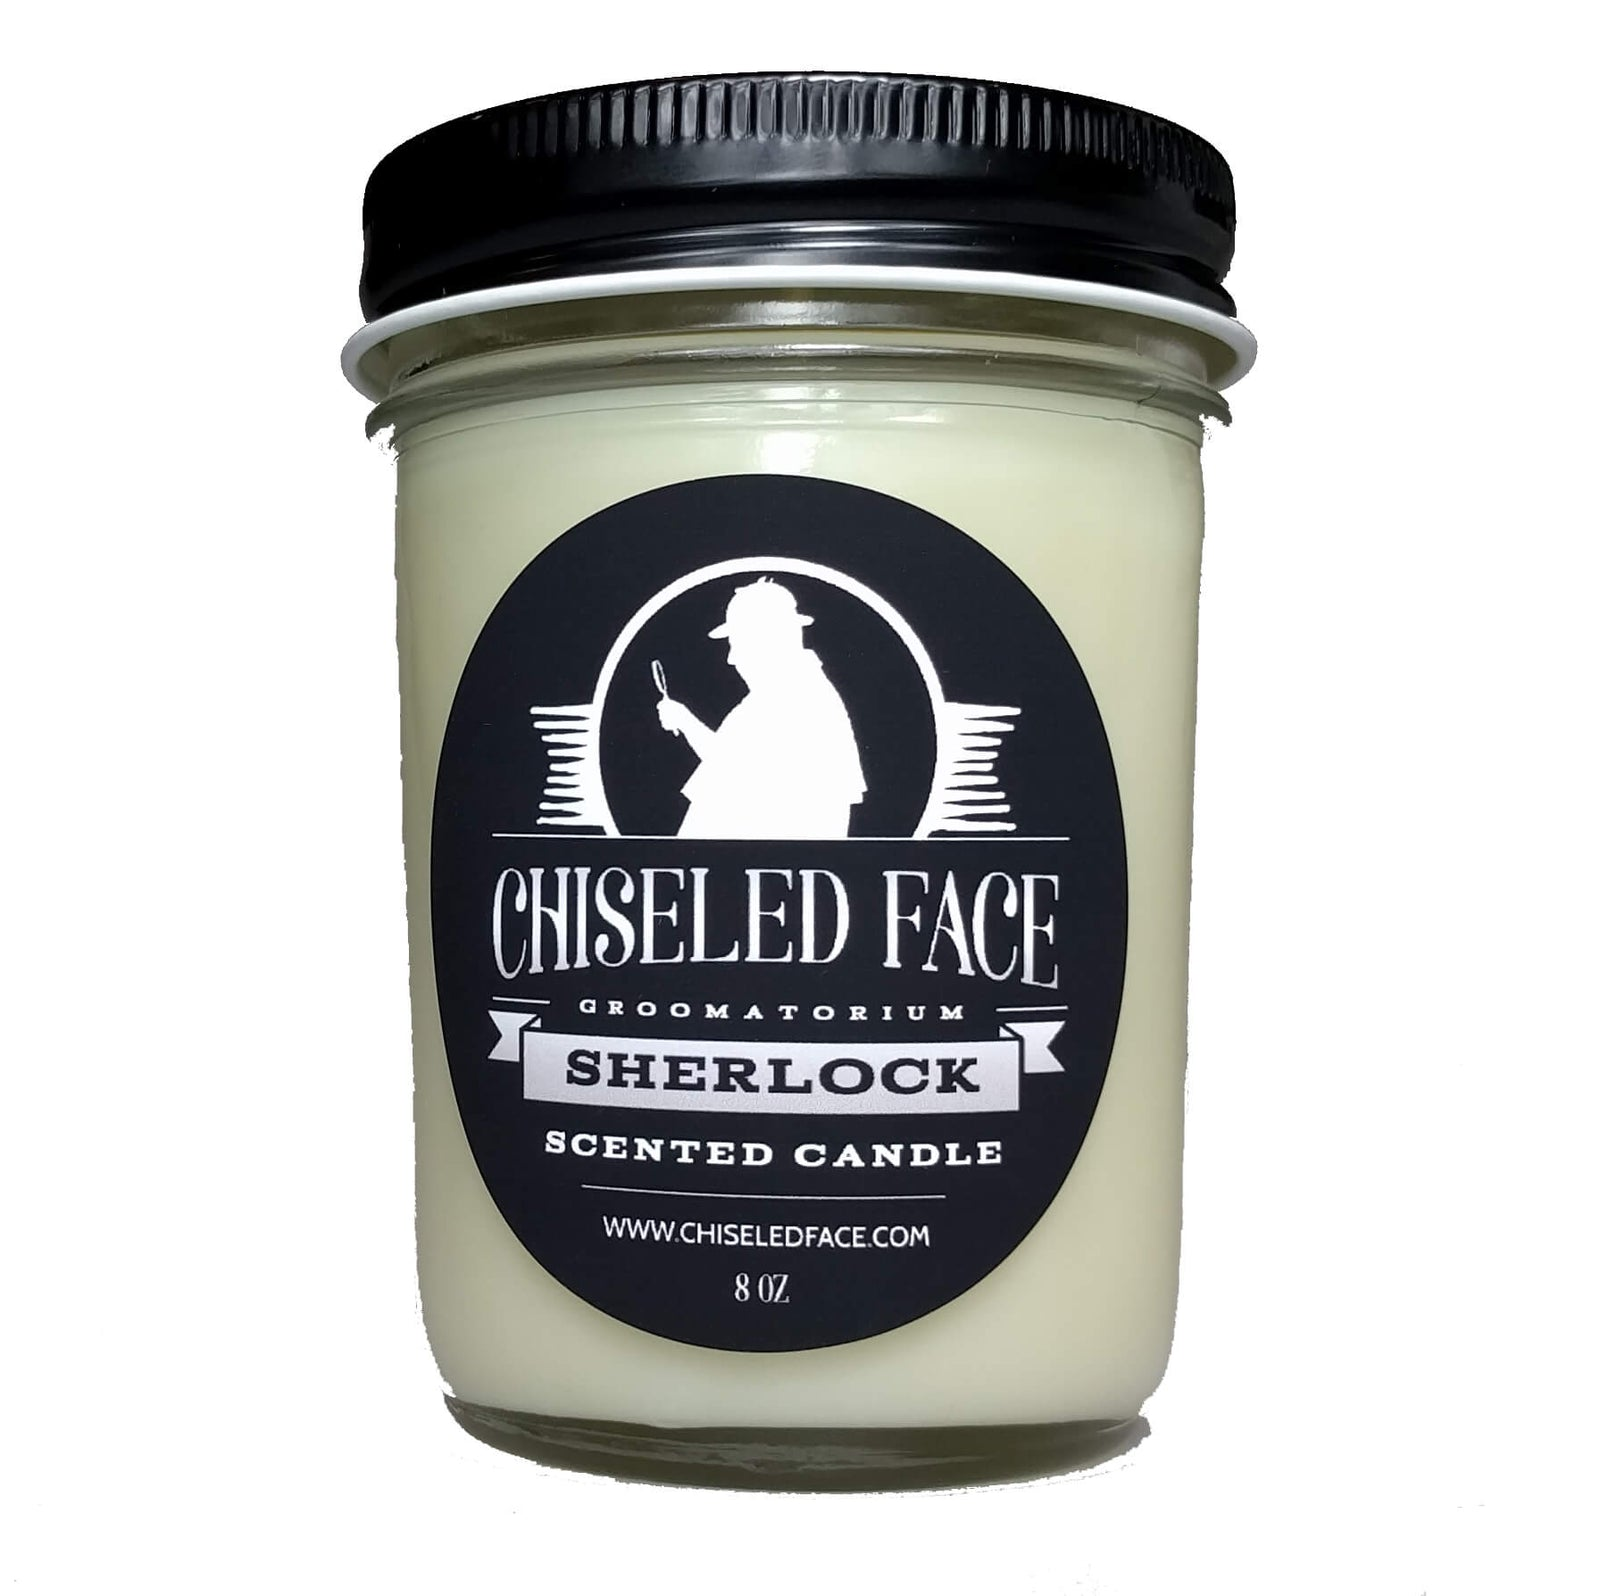 Chiseled Face – Sherlock Scented Candle